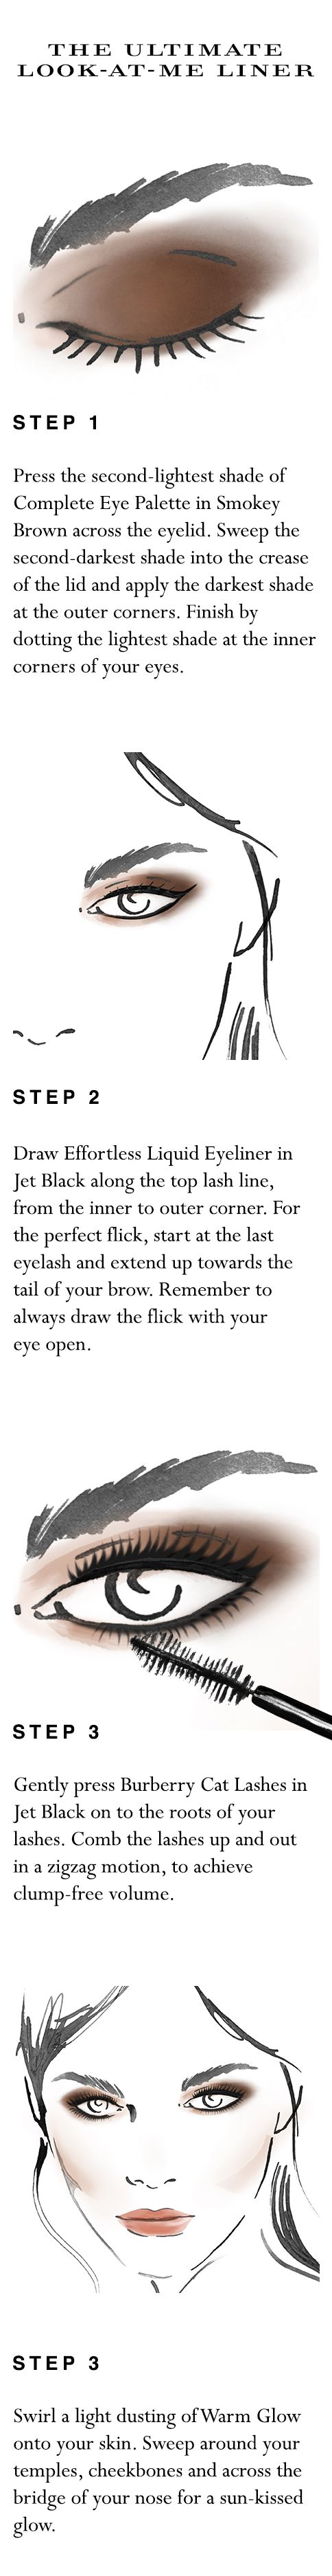 Your easy to follow make-up 'how to' for the ultimate look-at-me eye liner in 15 minutes. Shop the complete look at Sephora.com and explore new Burberry Cat Lashes.